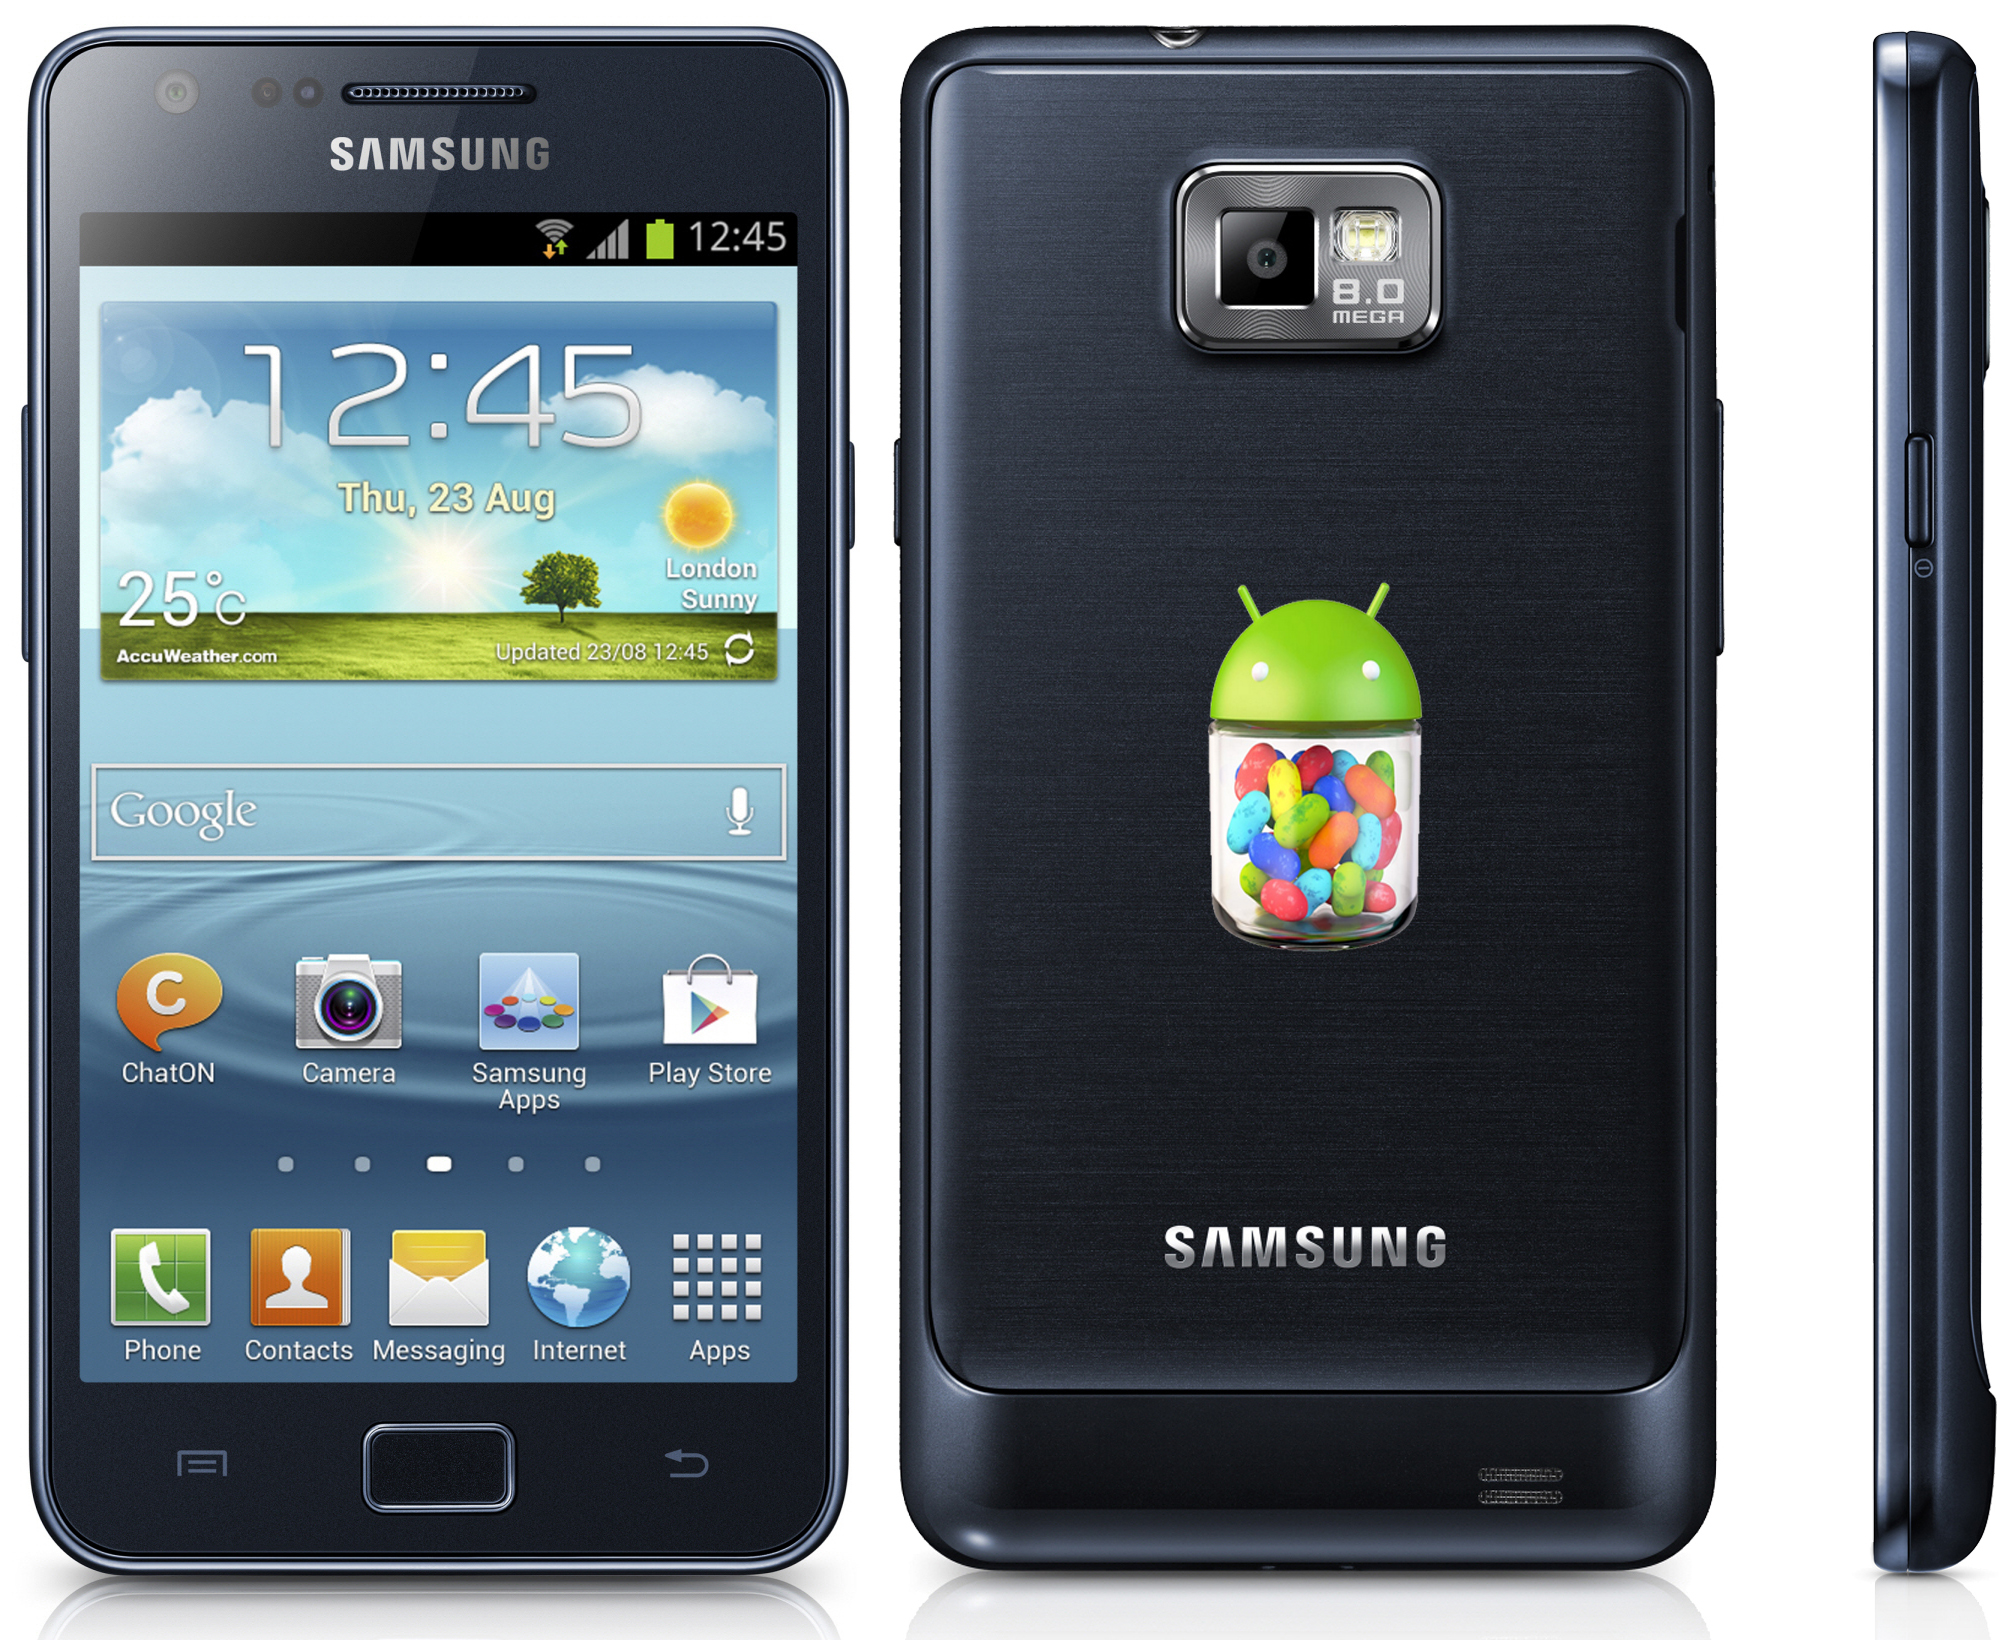 Samsung galaxy s2 update firmware i9100 youtube.